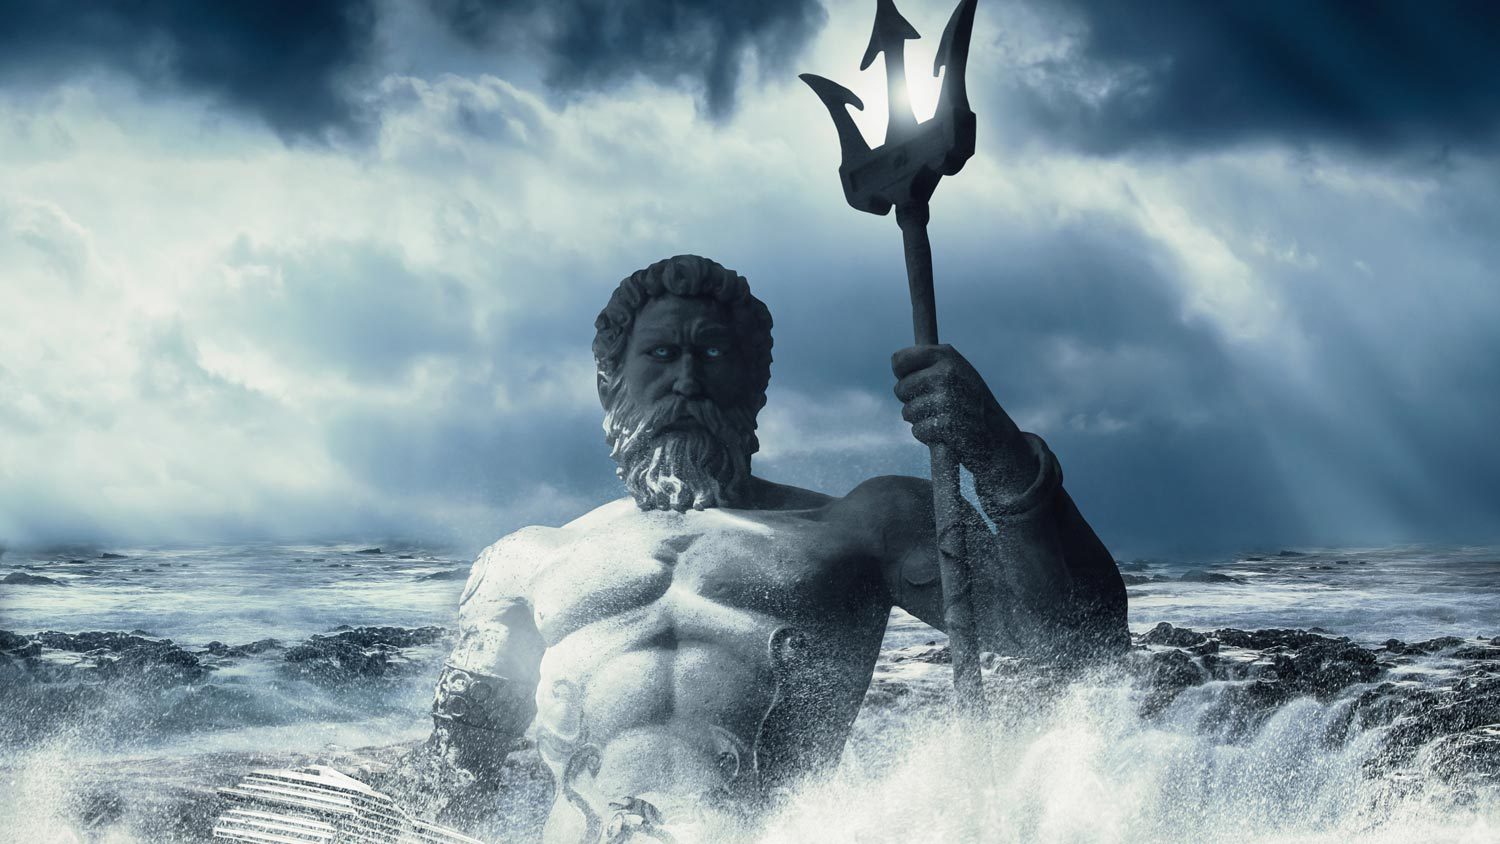 Poseidon rising from the sea